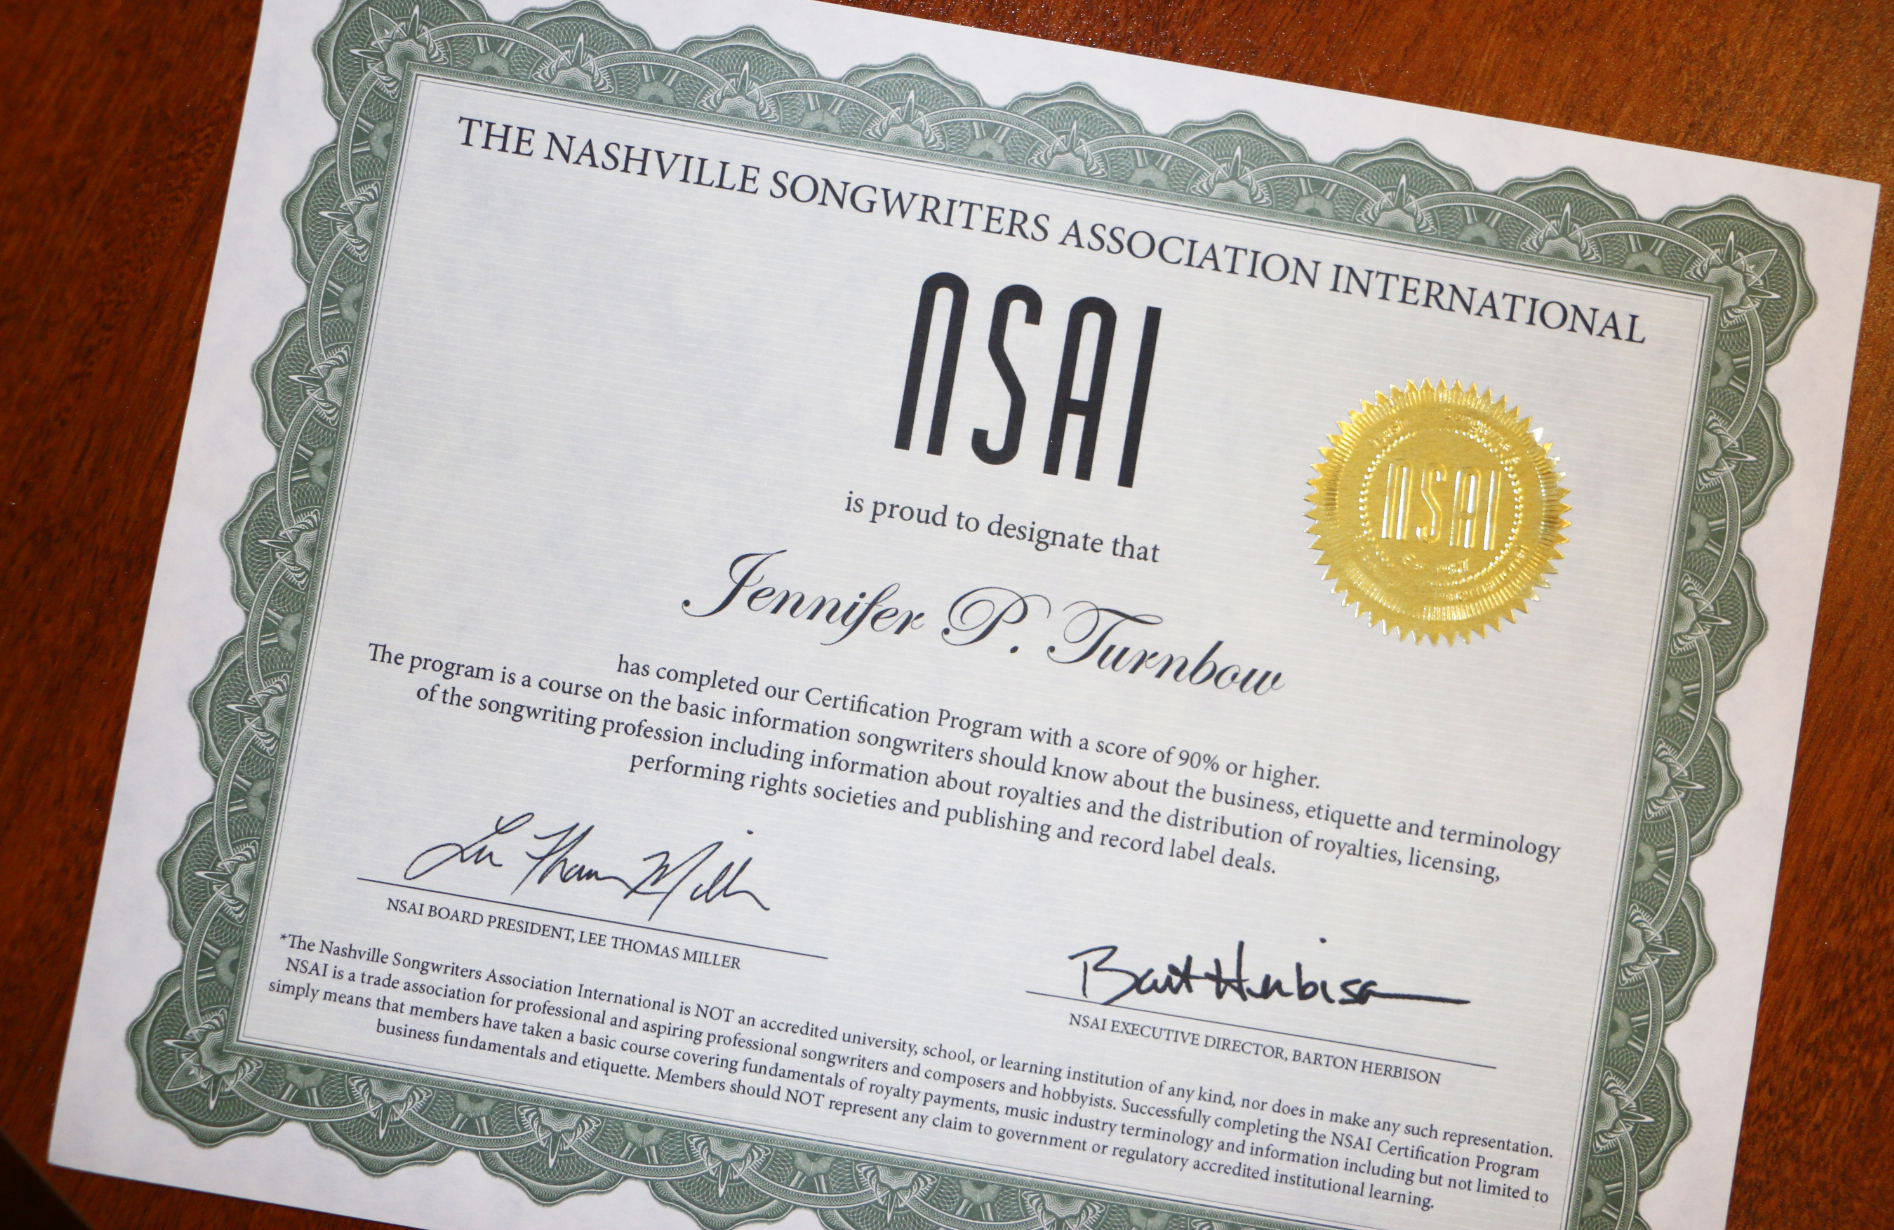 certification program nsai certificate international songwriters courses completion nashville nashvillesongwriters